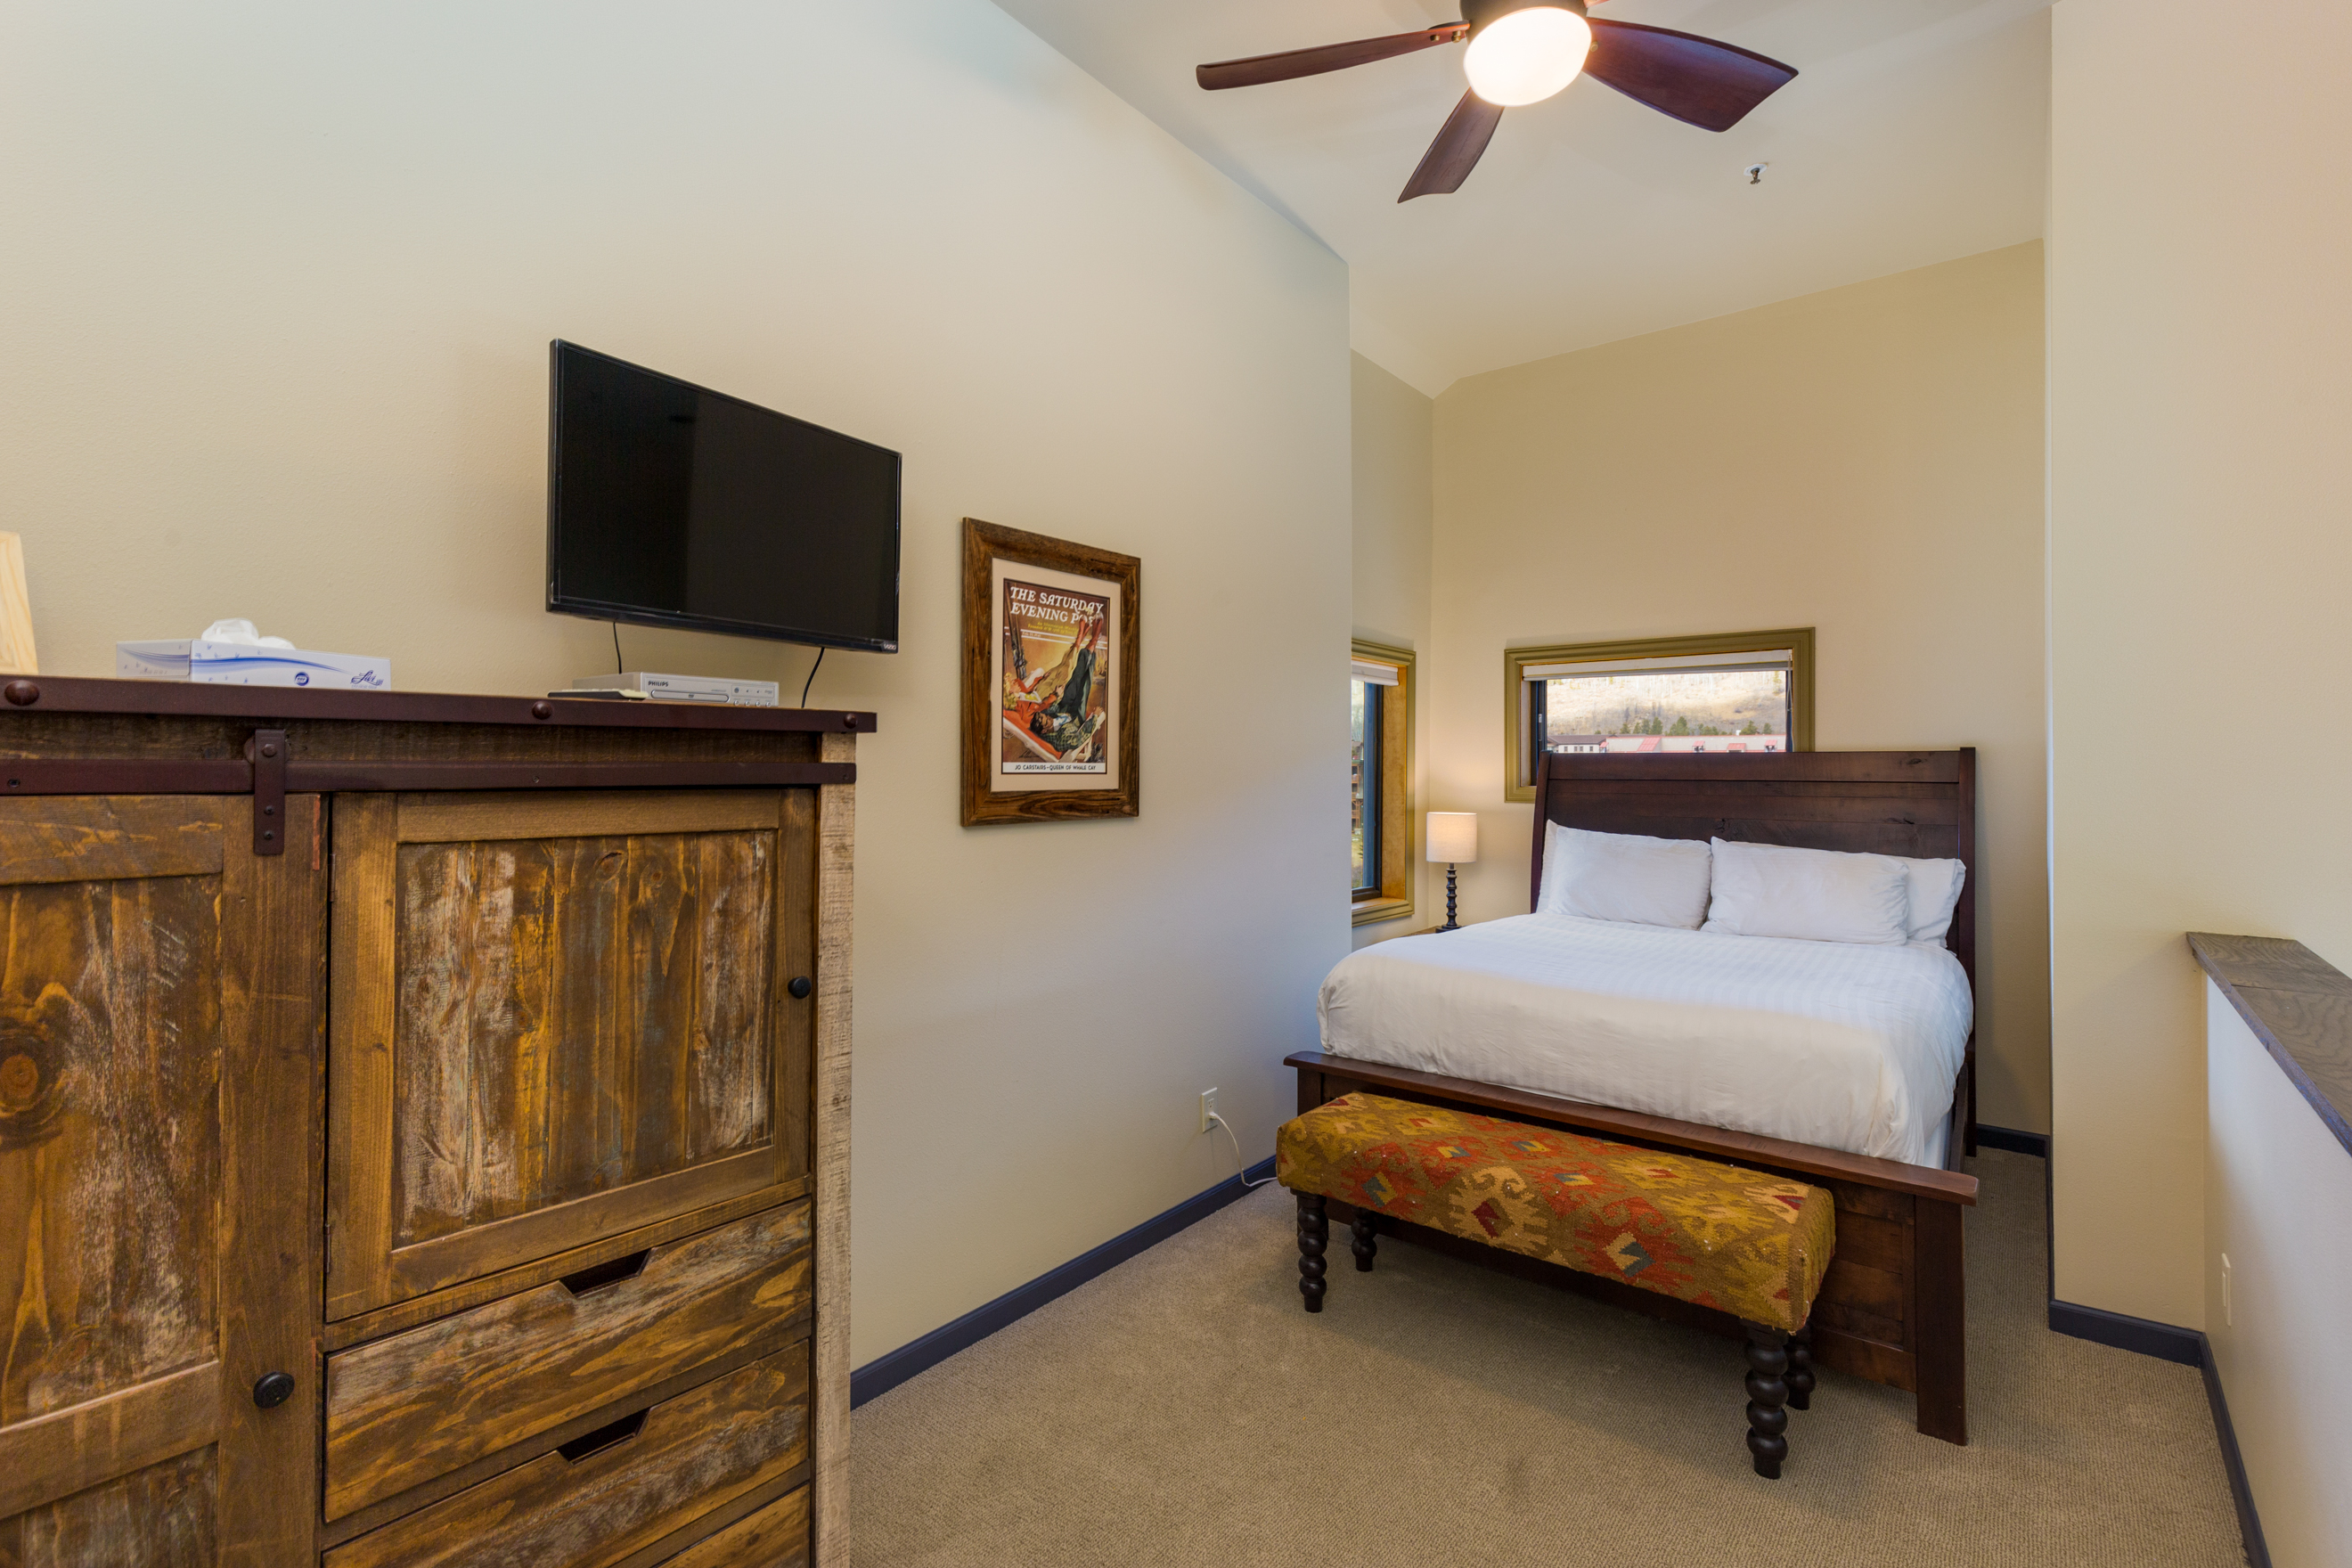 The guest bedroom is the upstairs loft and features a queen-sized bed with Ivory White Bedding, a flat screen TV and mountain views.